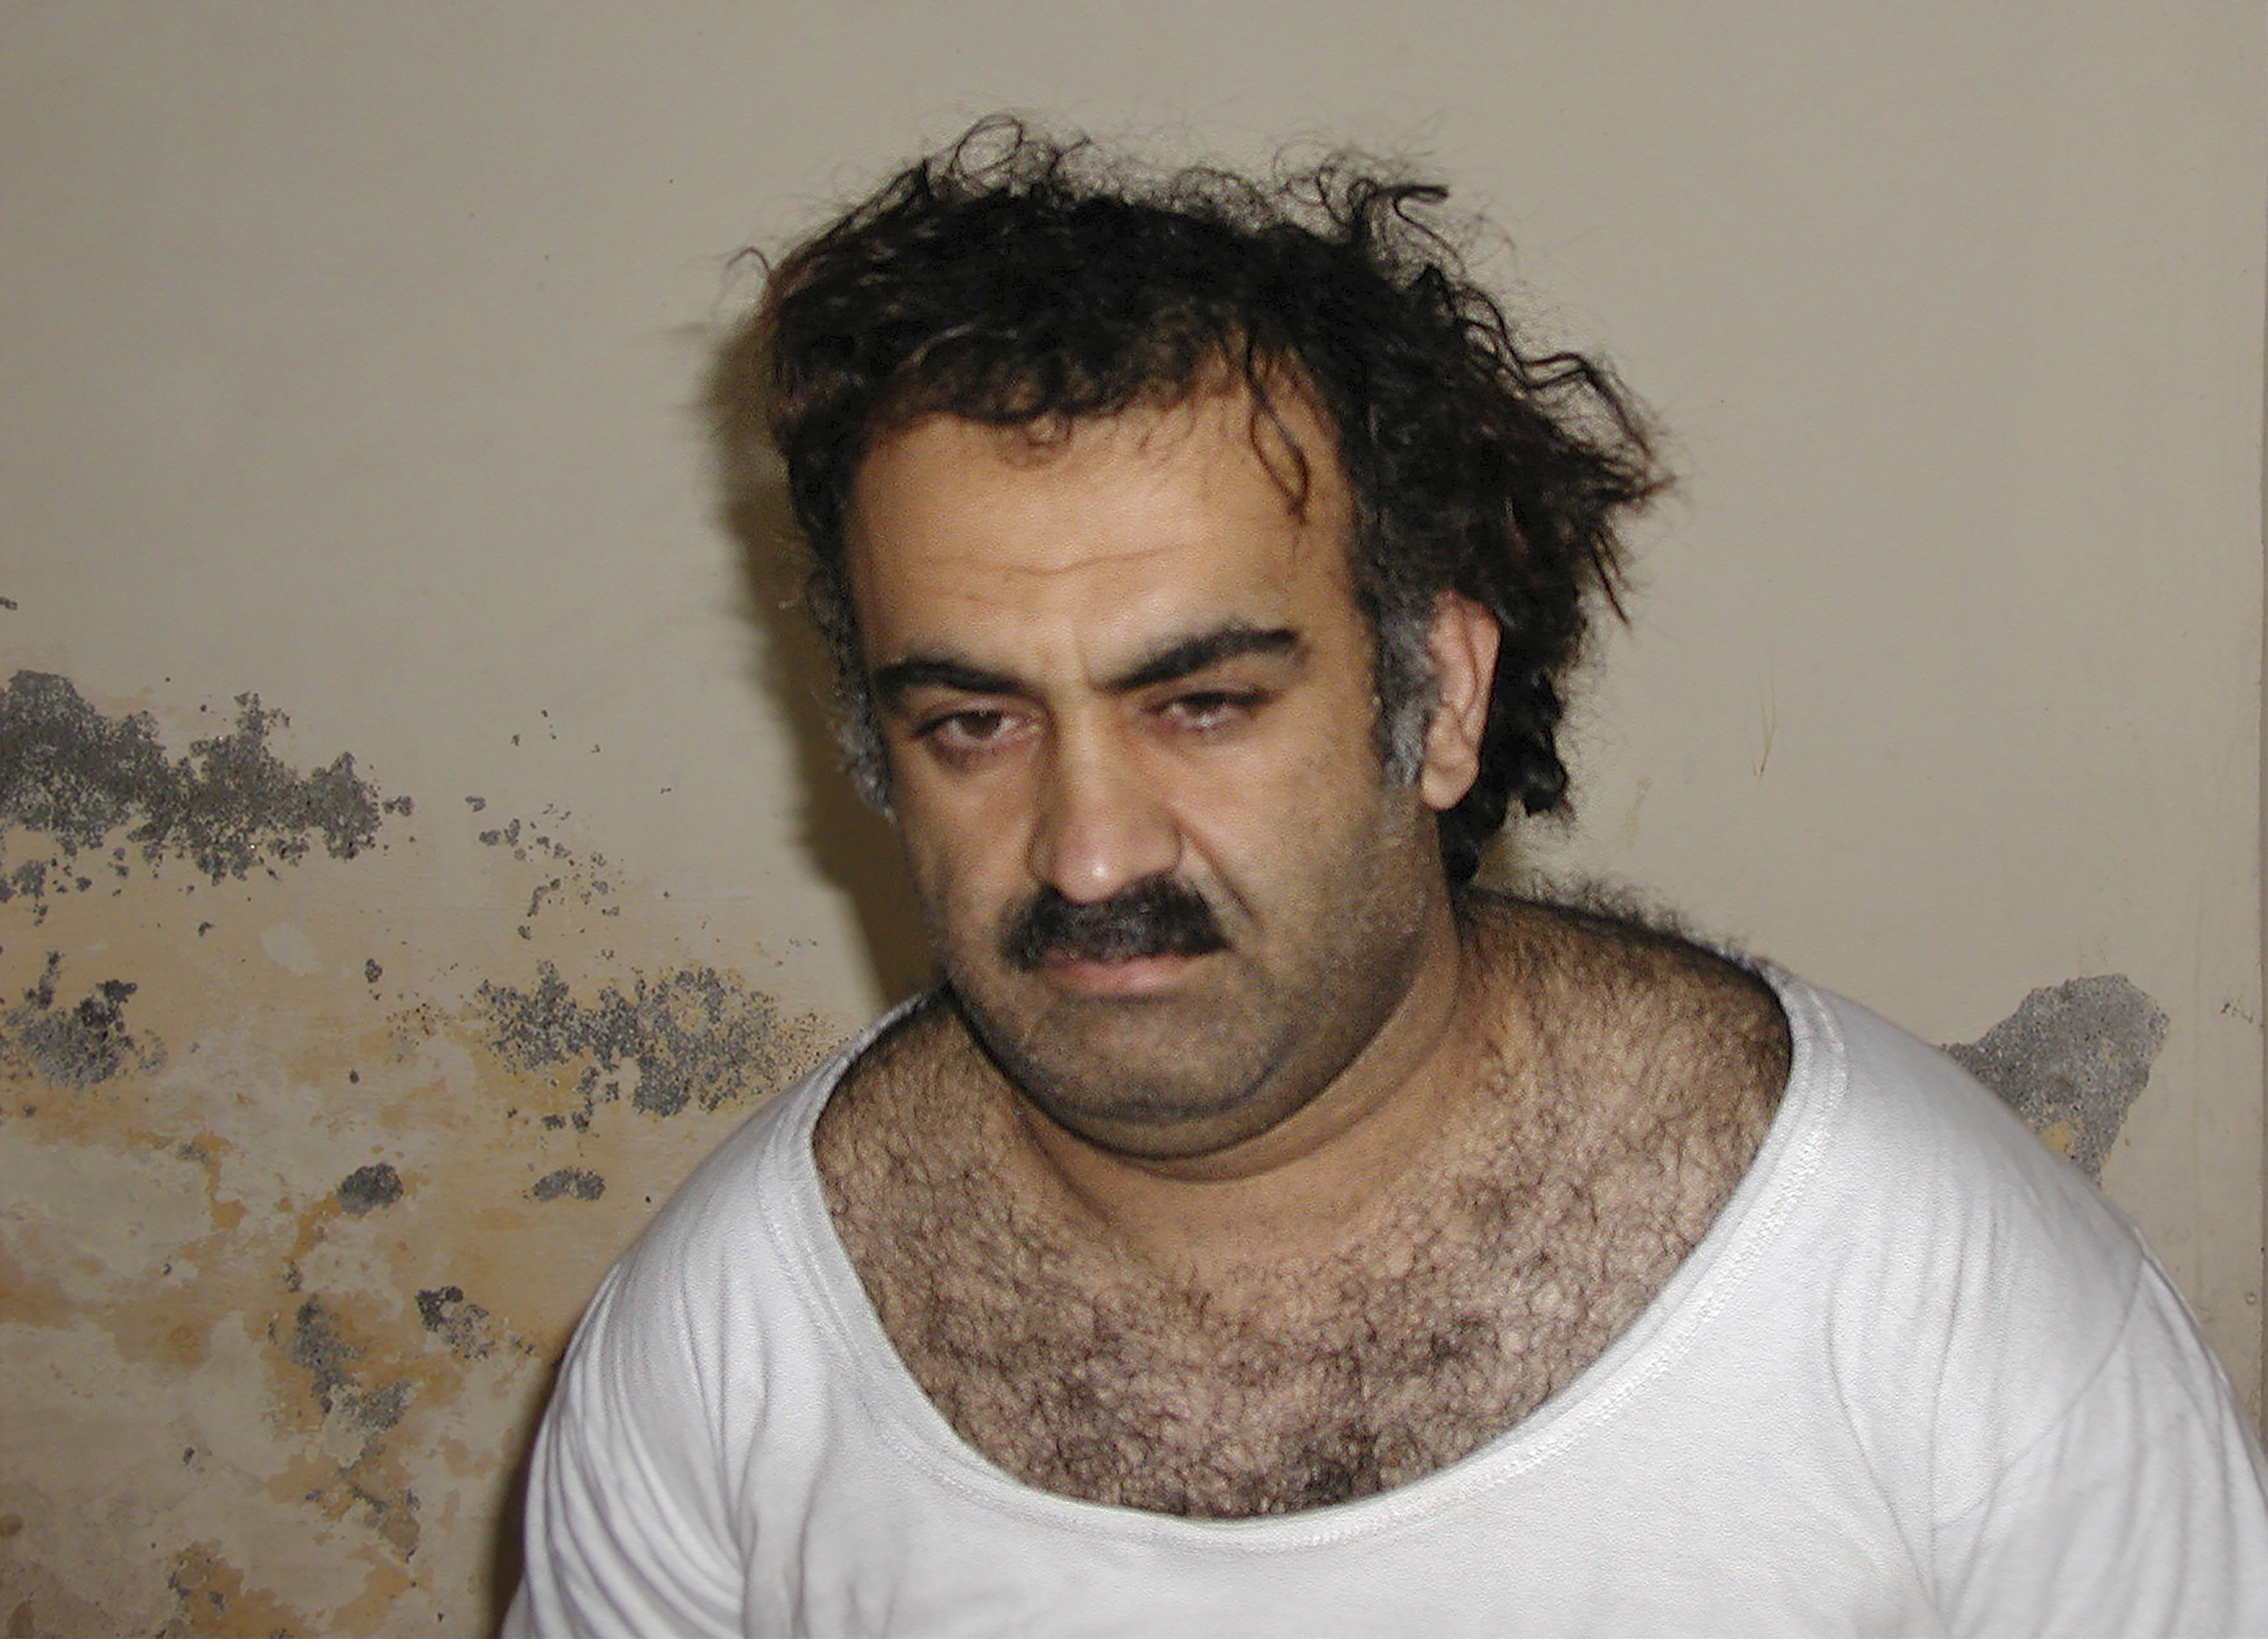 A photo provided by the United States Department of Justice of Khalid Shaikh Mohammed after his capture during a raid in Pakistan on March 1, 2003.